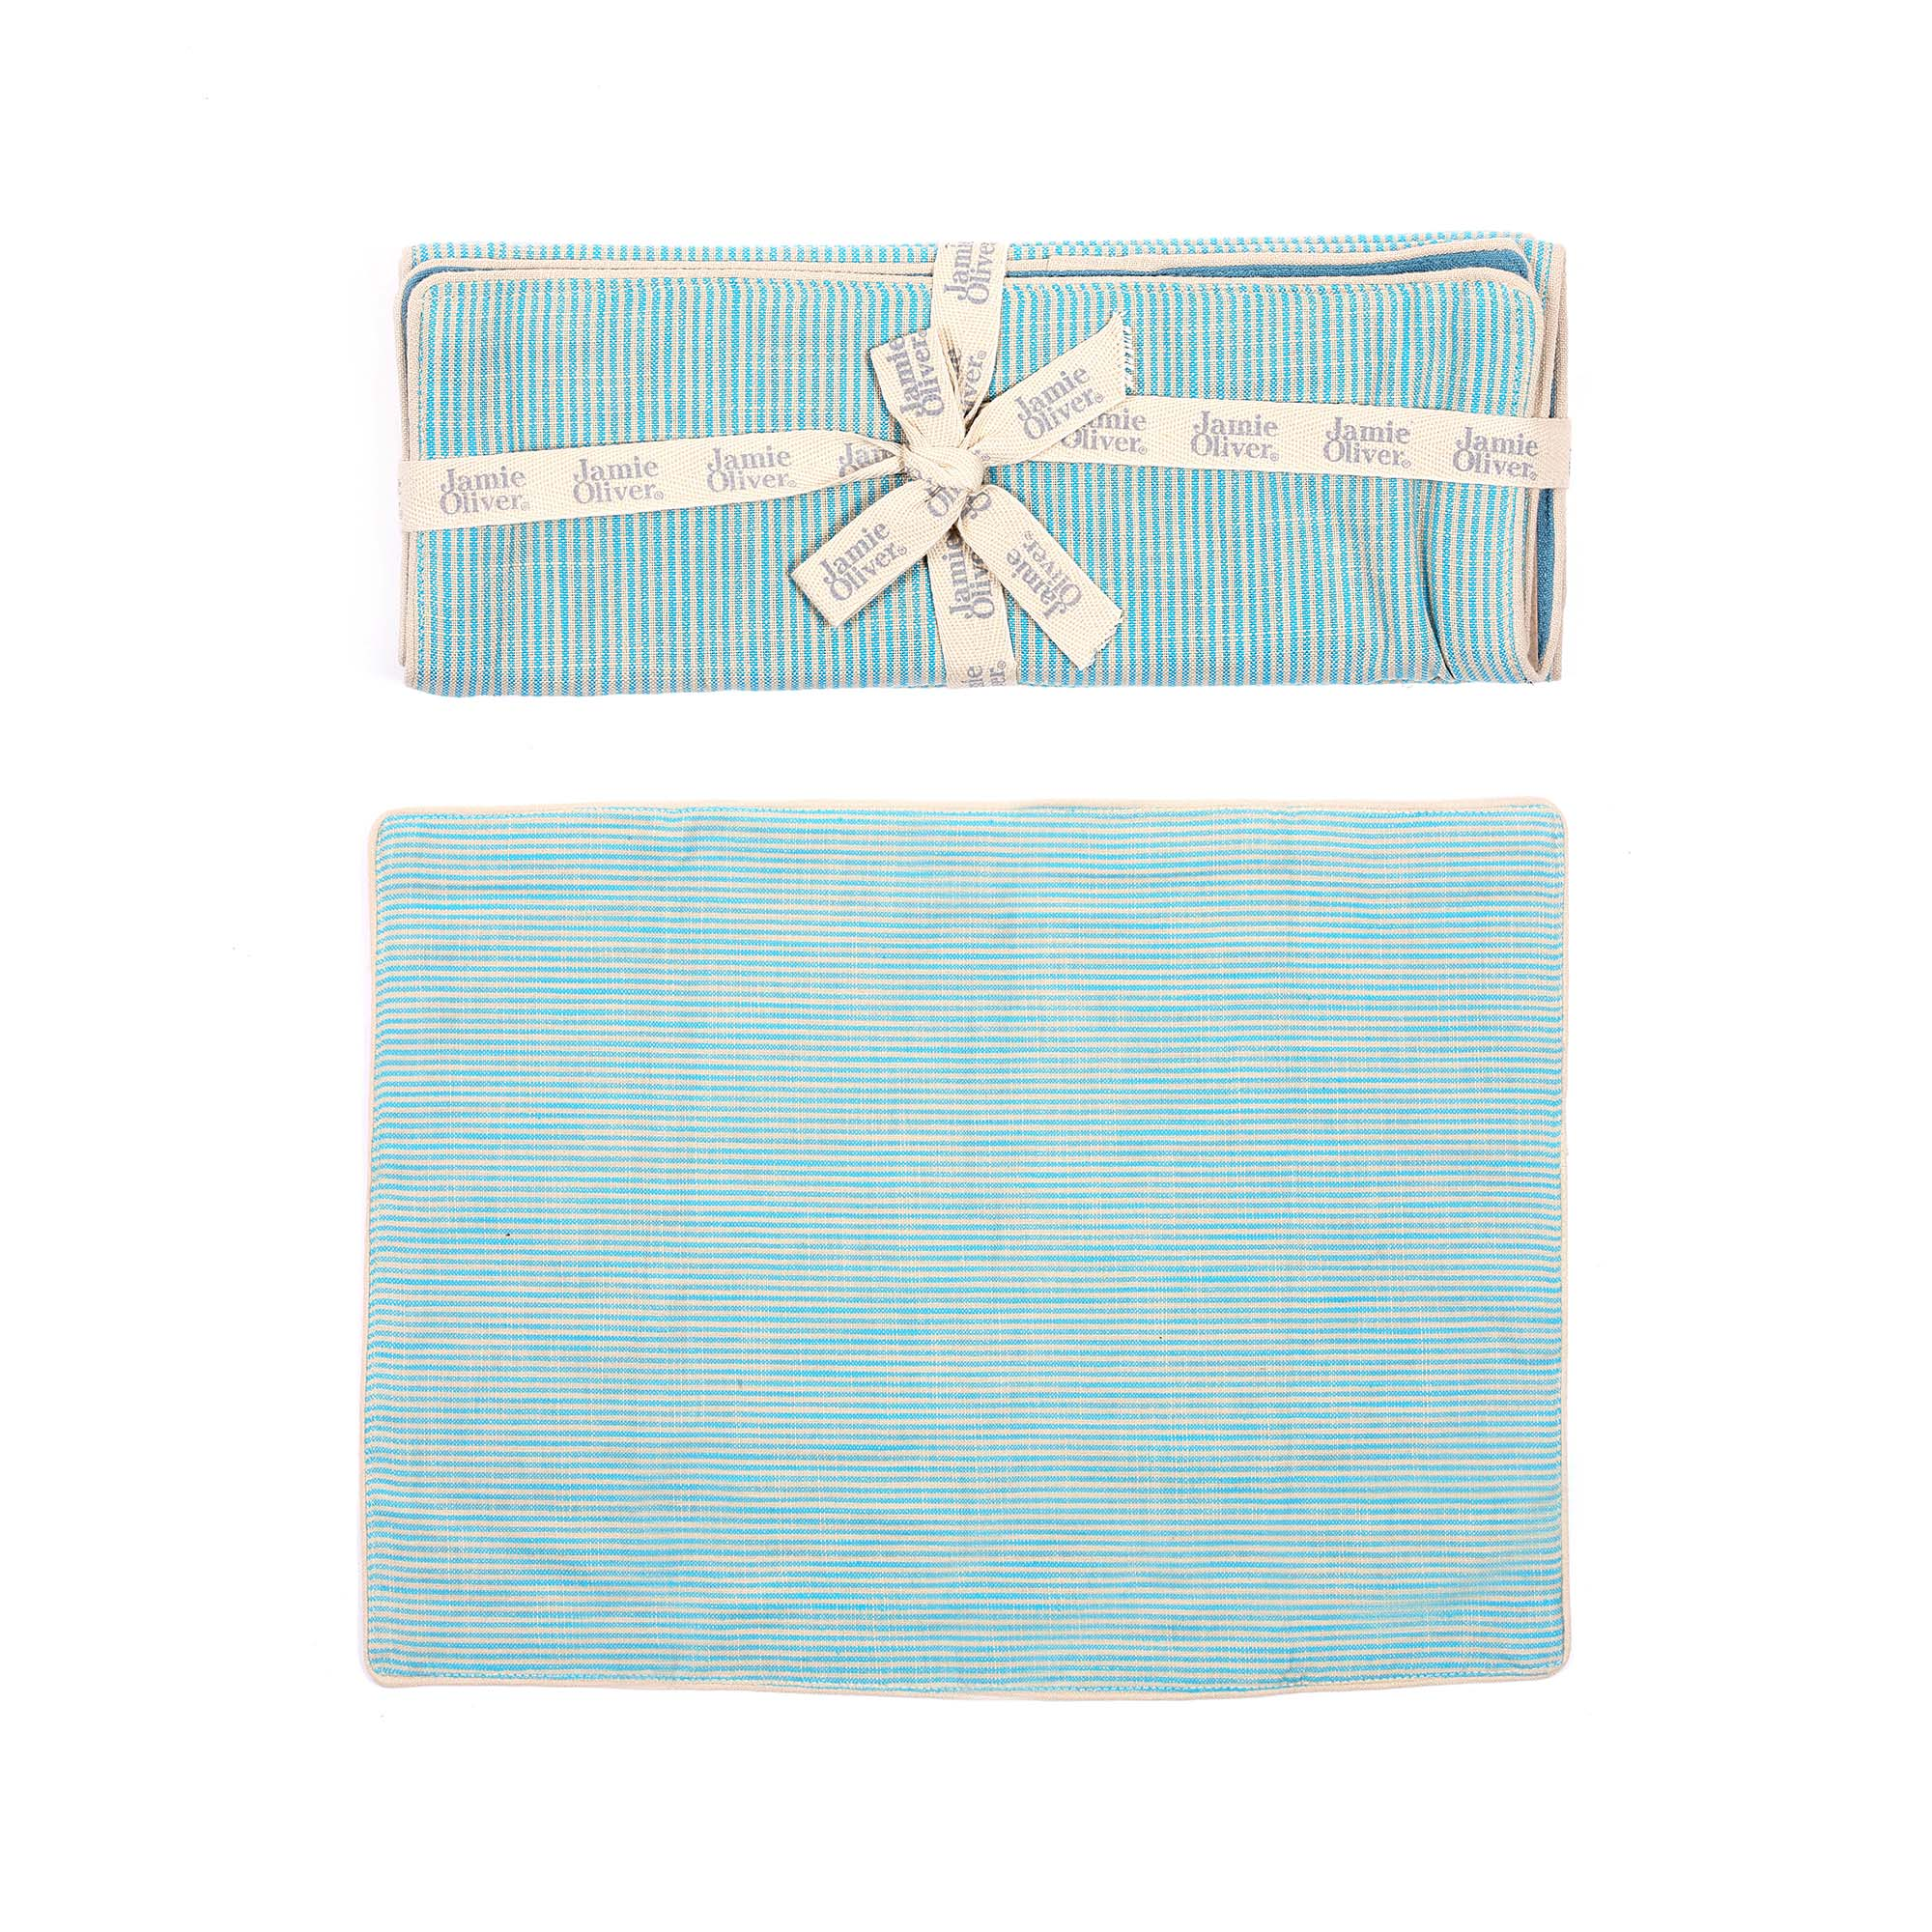 Jamie Oliver Set of 2 Placemats